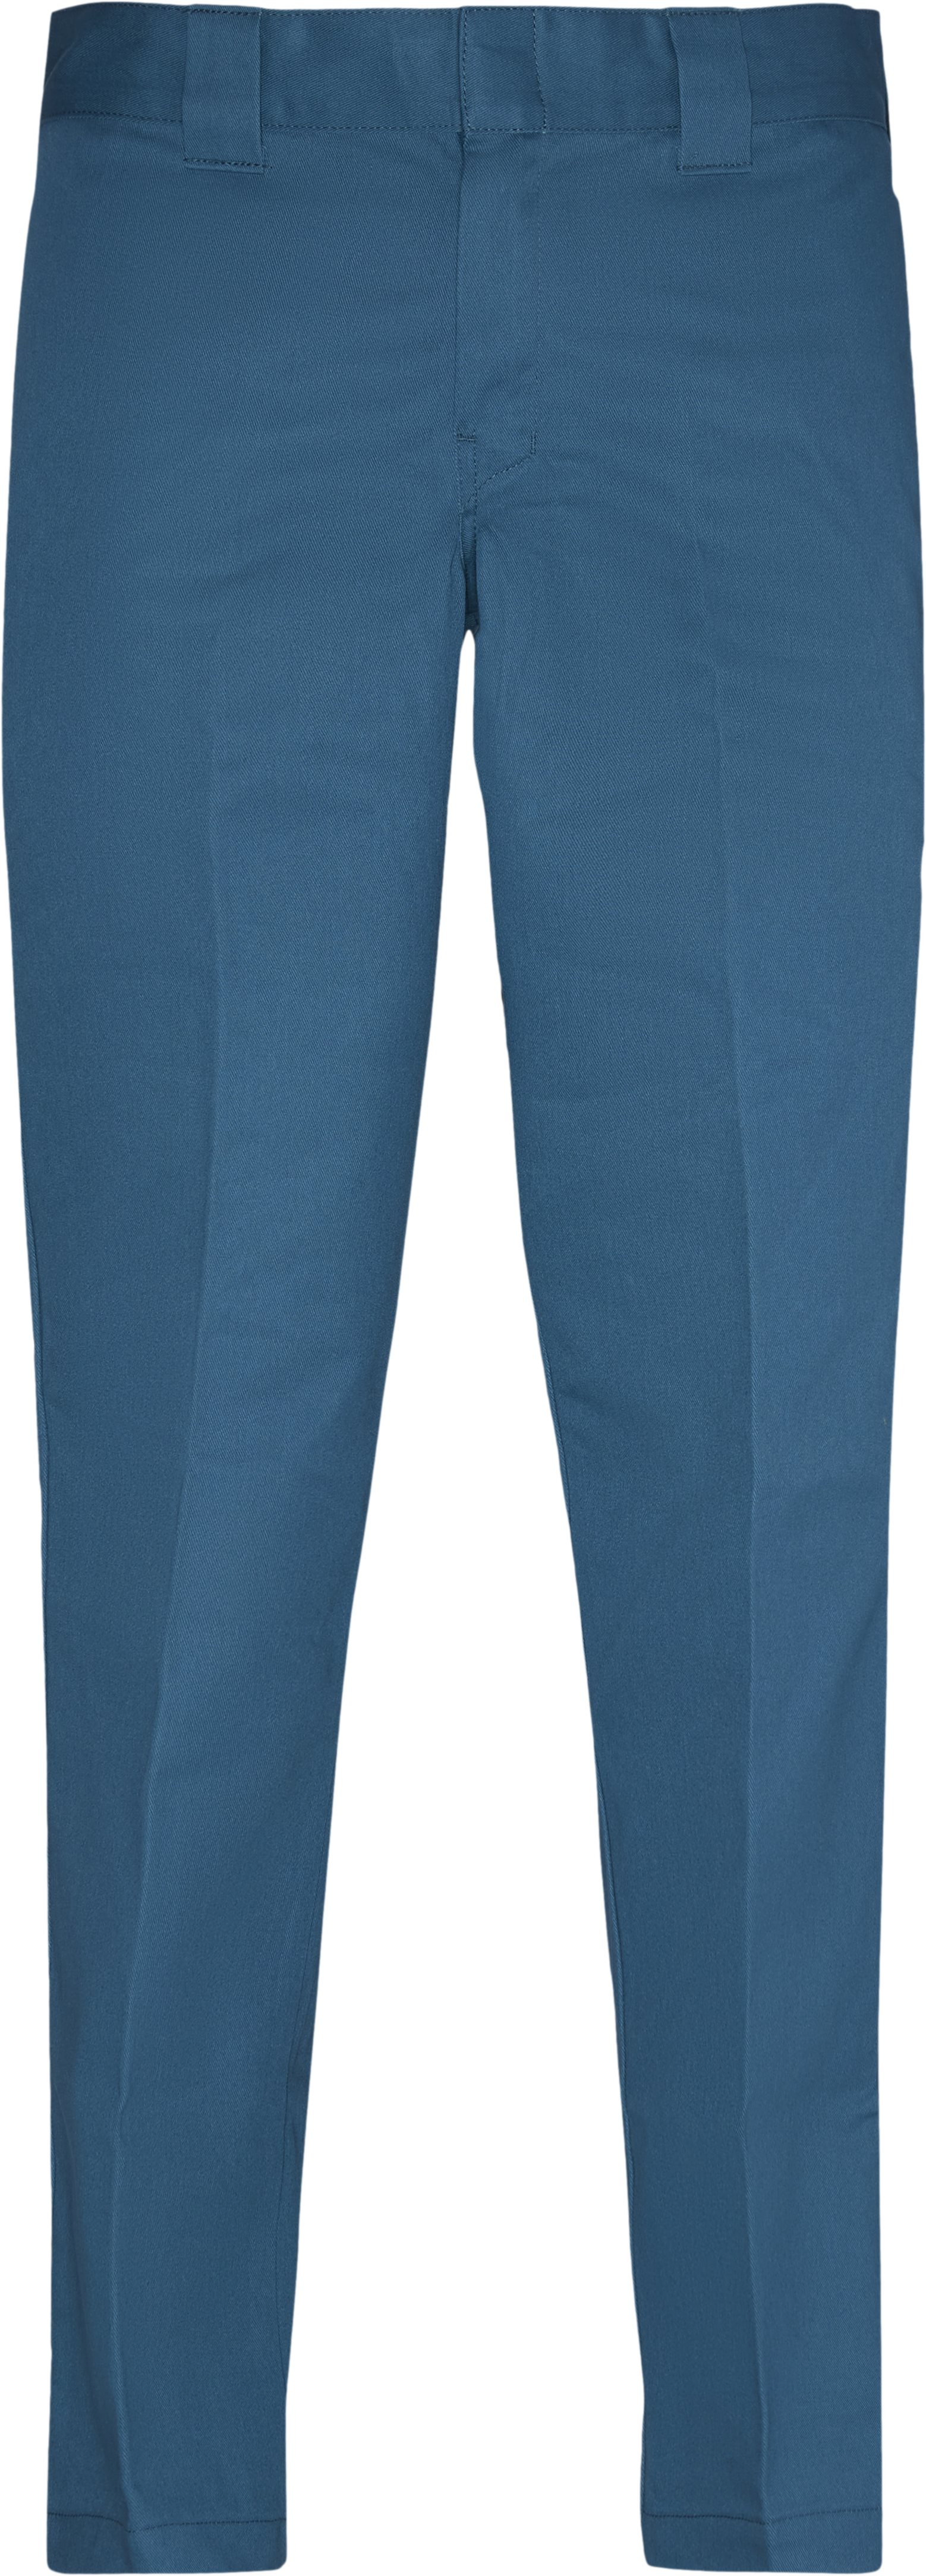 Work Pant - Bukser - Regular - Blå